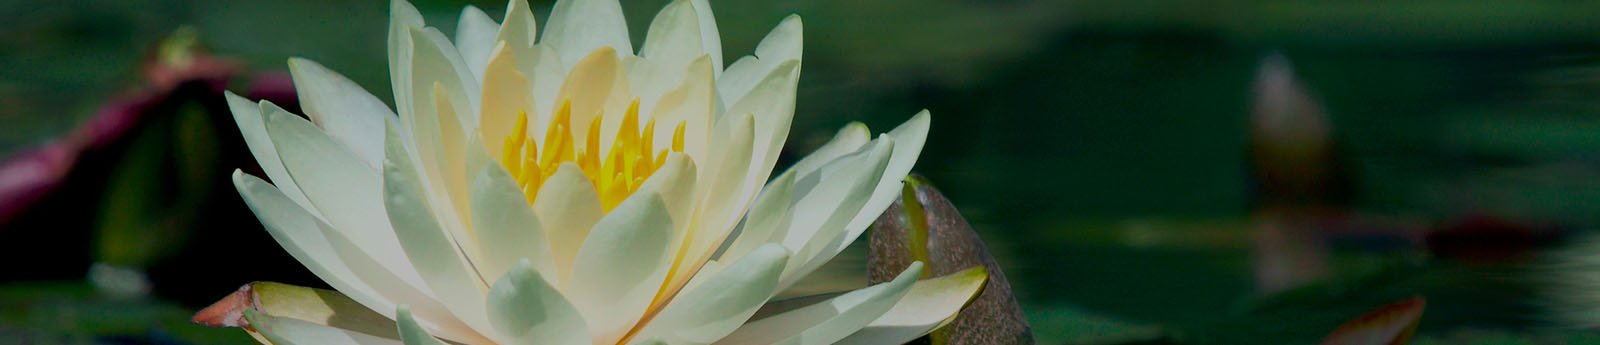 Resources | Musselman Funeral Home & Cremation Services Inc.